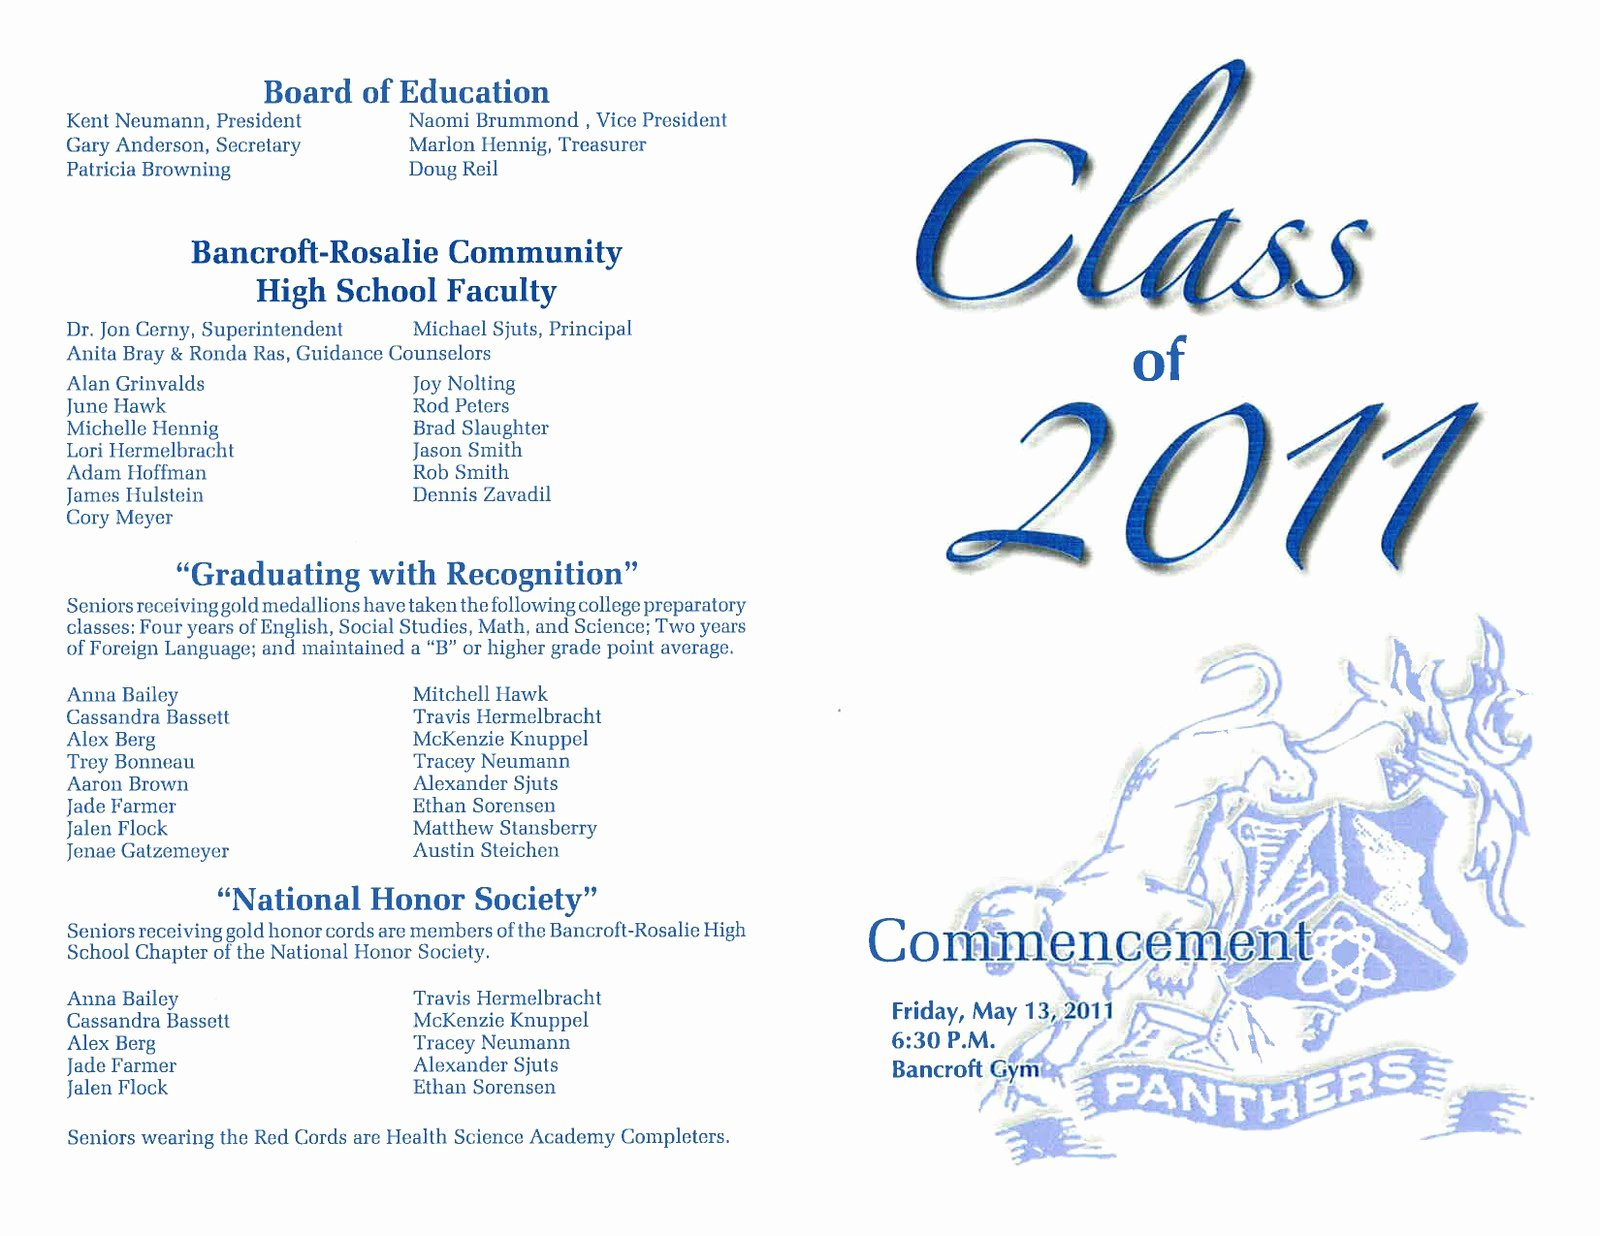 Kindergarten Graduation Program Template Free New Dr Cerny S B R Hype Graduation tonight